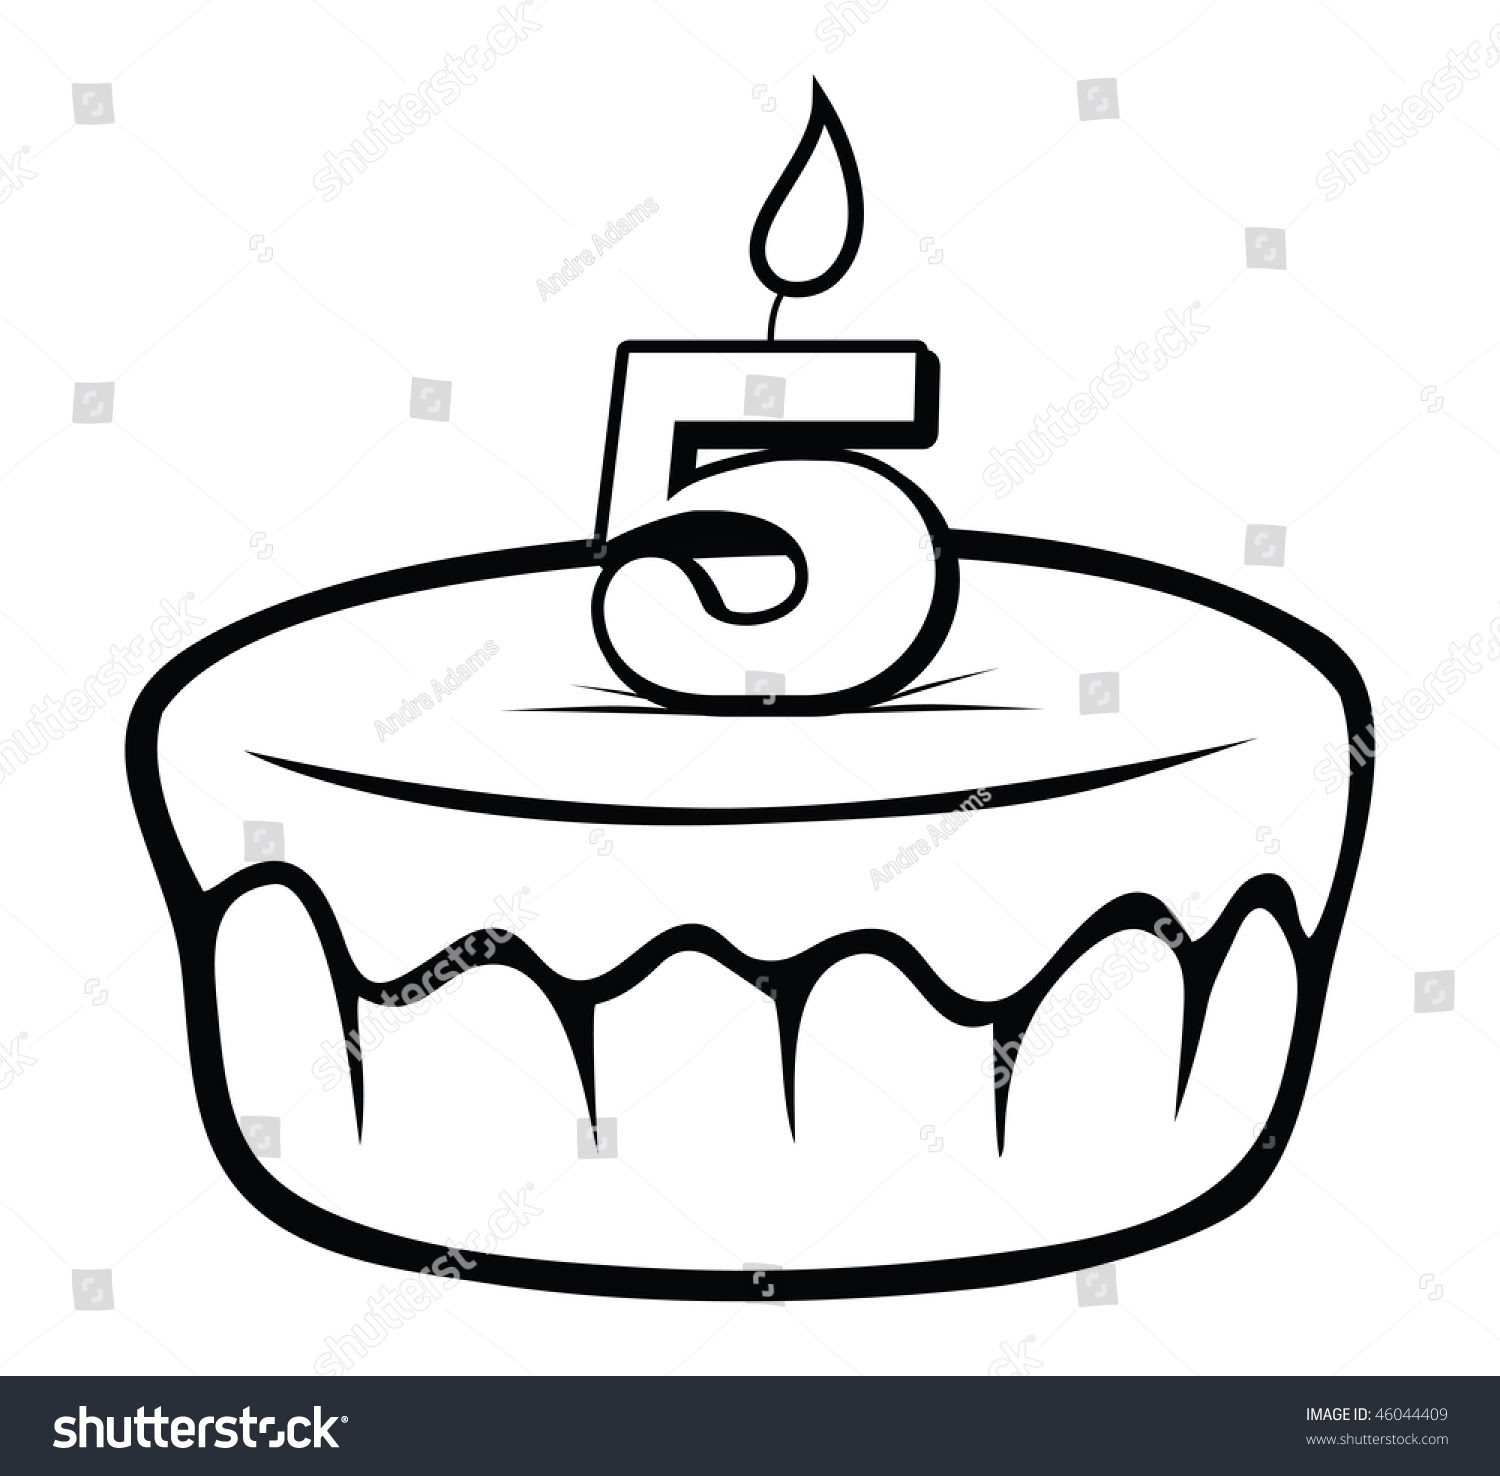 Birthday Cake Outline Images Stock Photos  Vectors Shutterstock